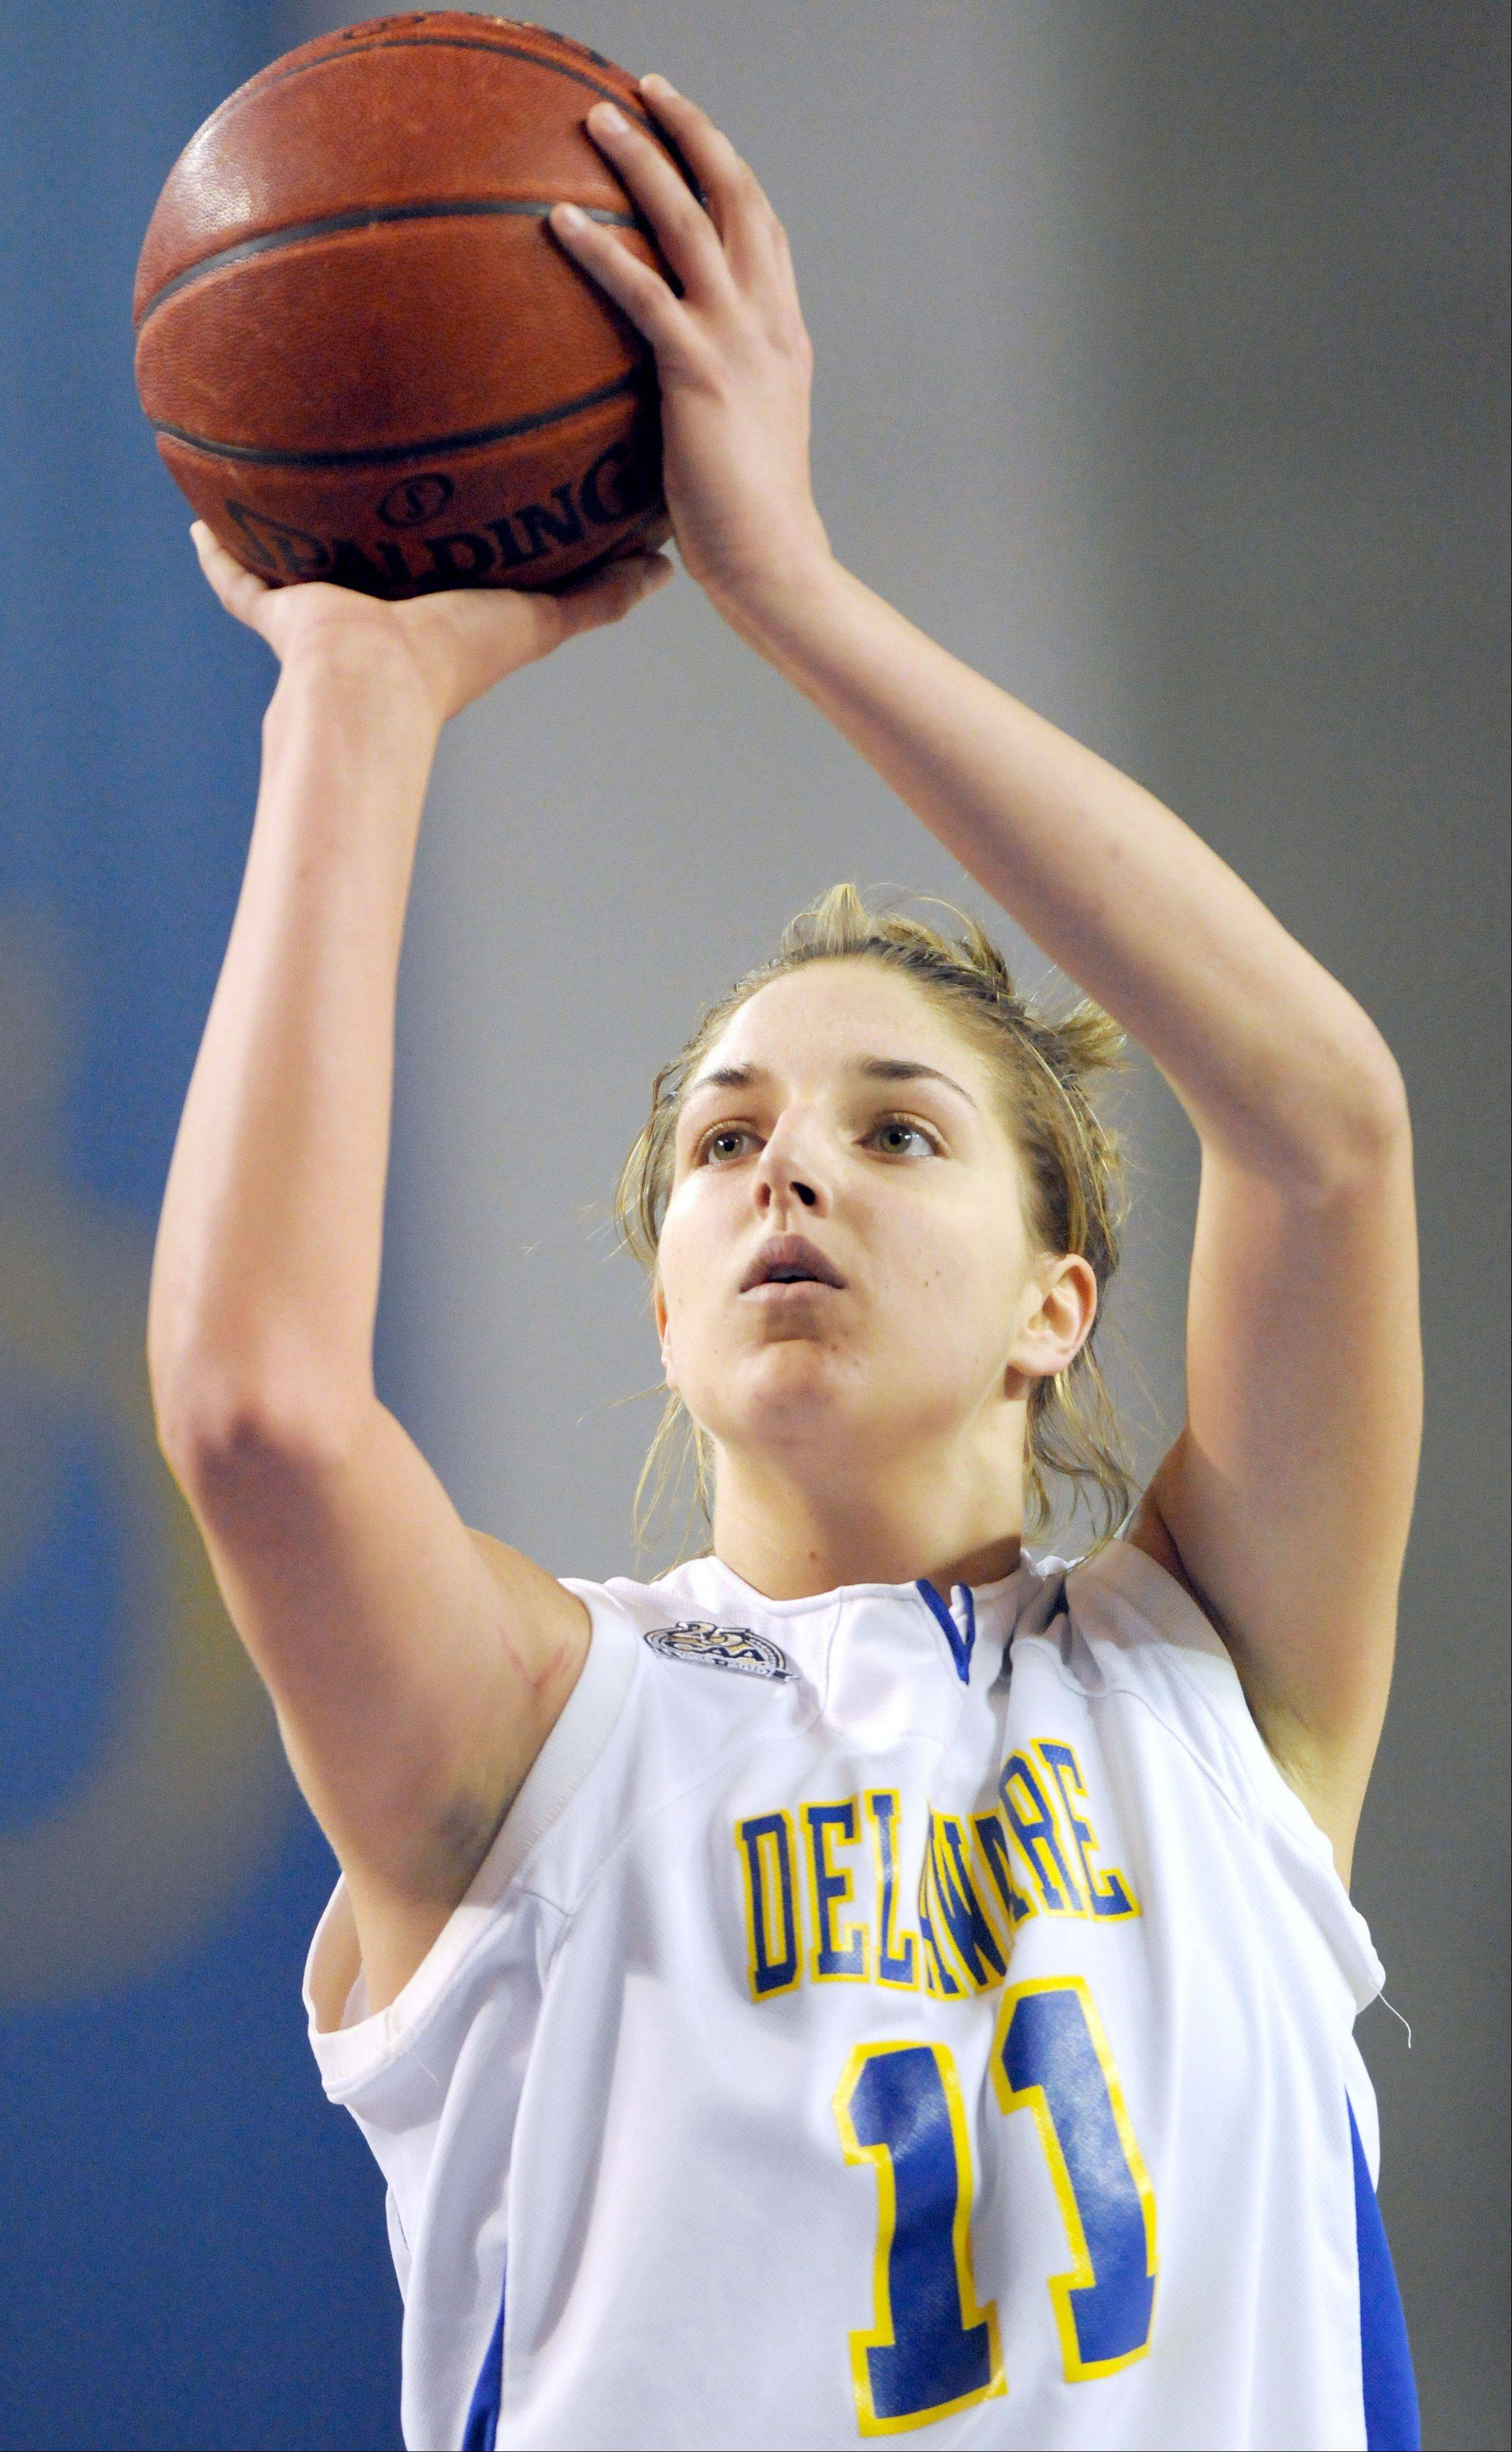 Delaware's Elena Delle Donne is the Chicago Sky's likely WNBA draft choice Monday.